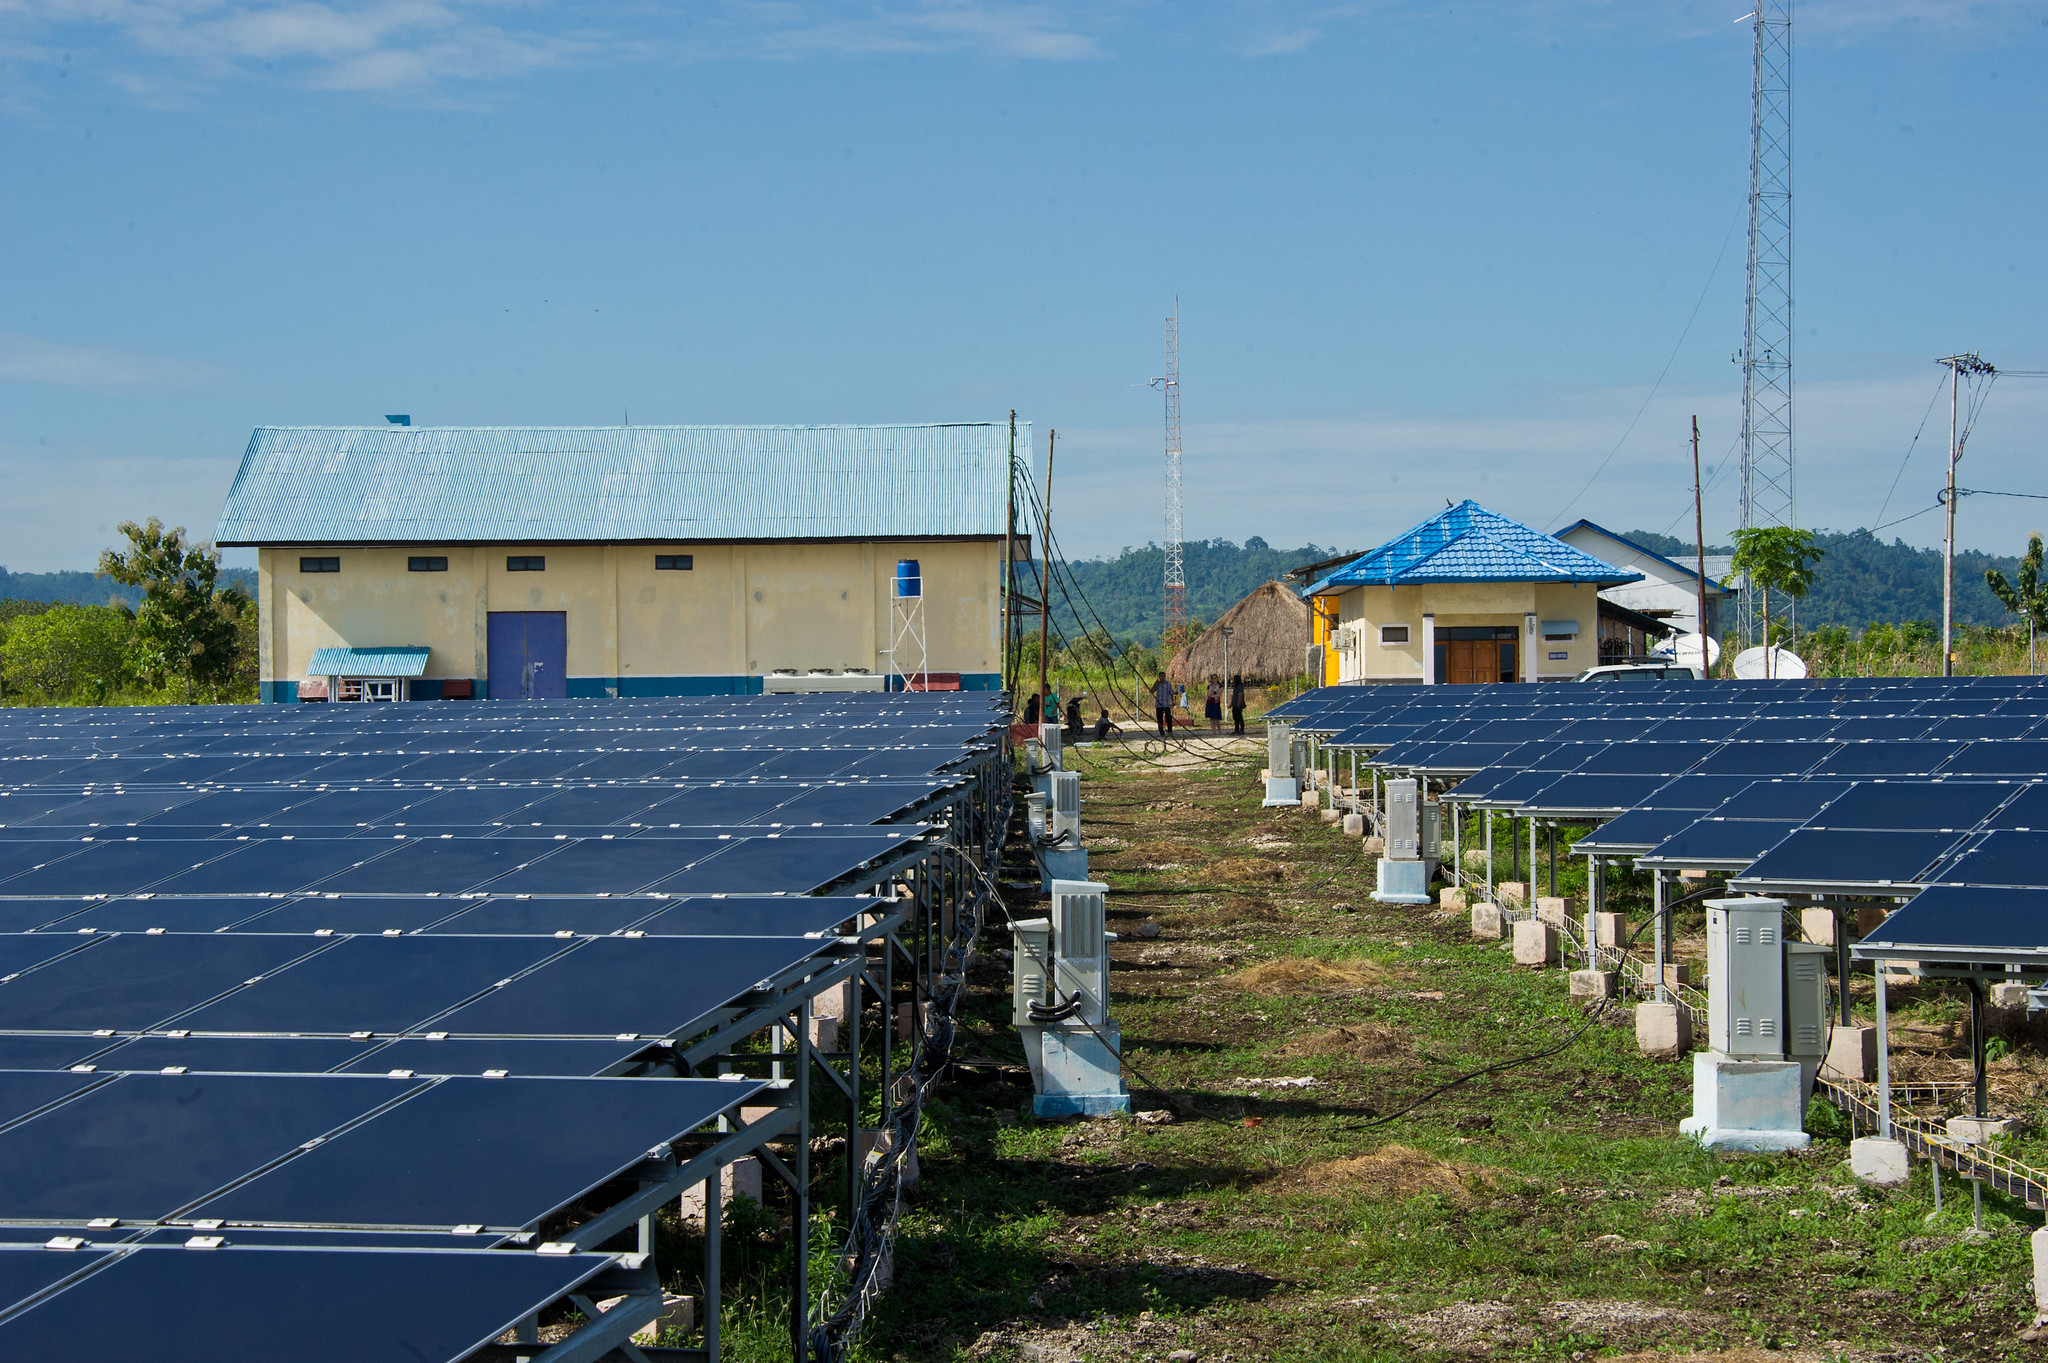 <p>Renewable energy systems like these solar panels in Indonesia are expanding access to electricity in Southeast Asia. Photo by Asian Development Bank.</p>